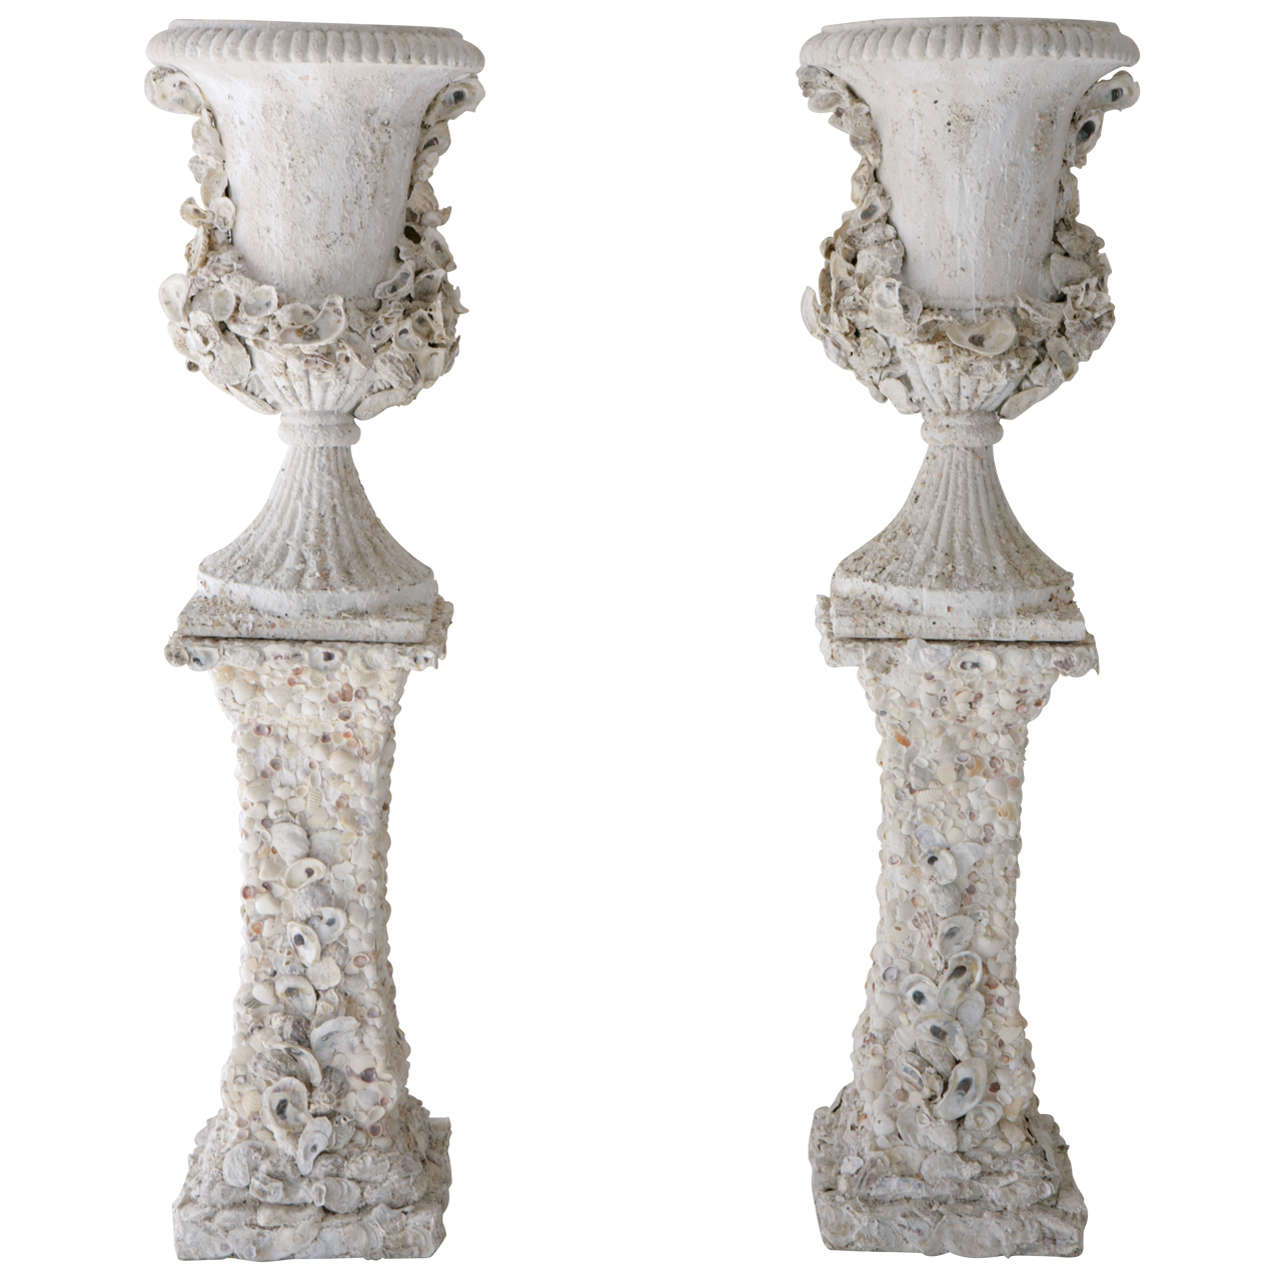 Grotto Style Shell Encrusted Urns On Pedestals At 1stdibs